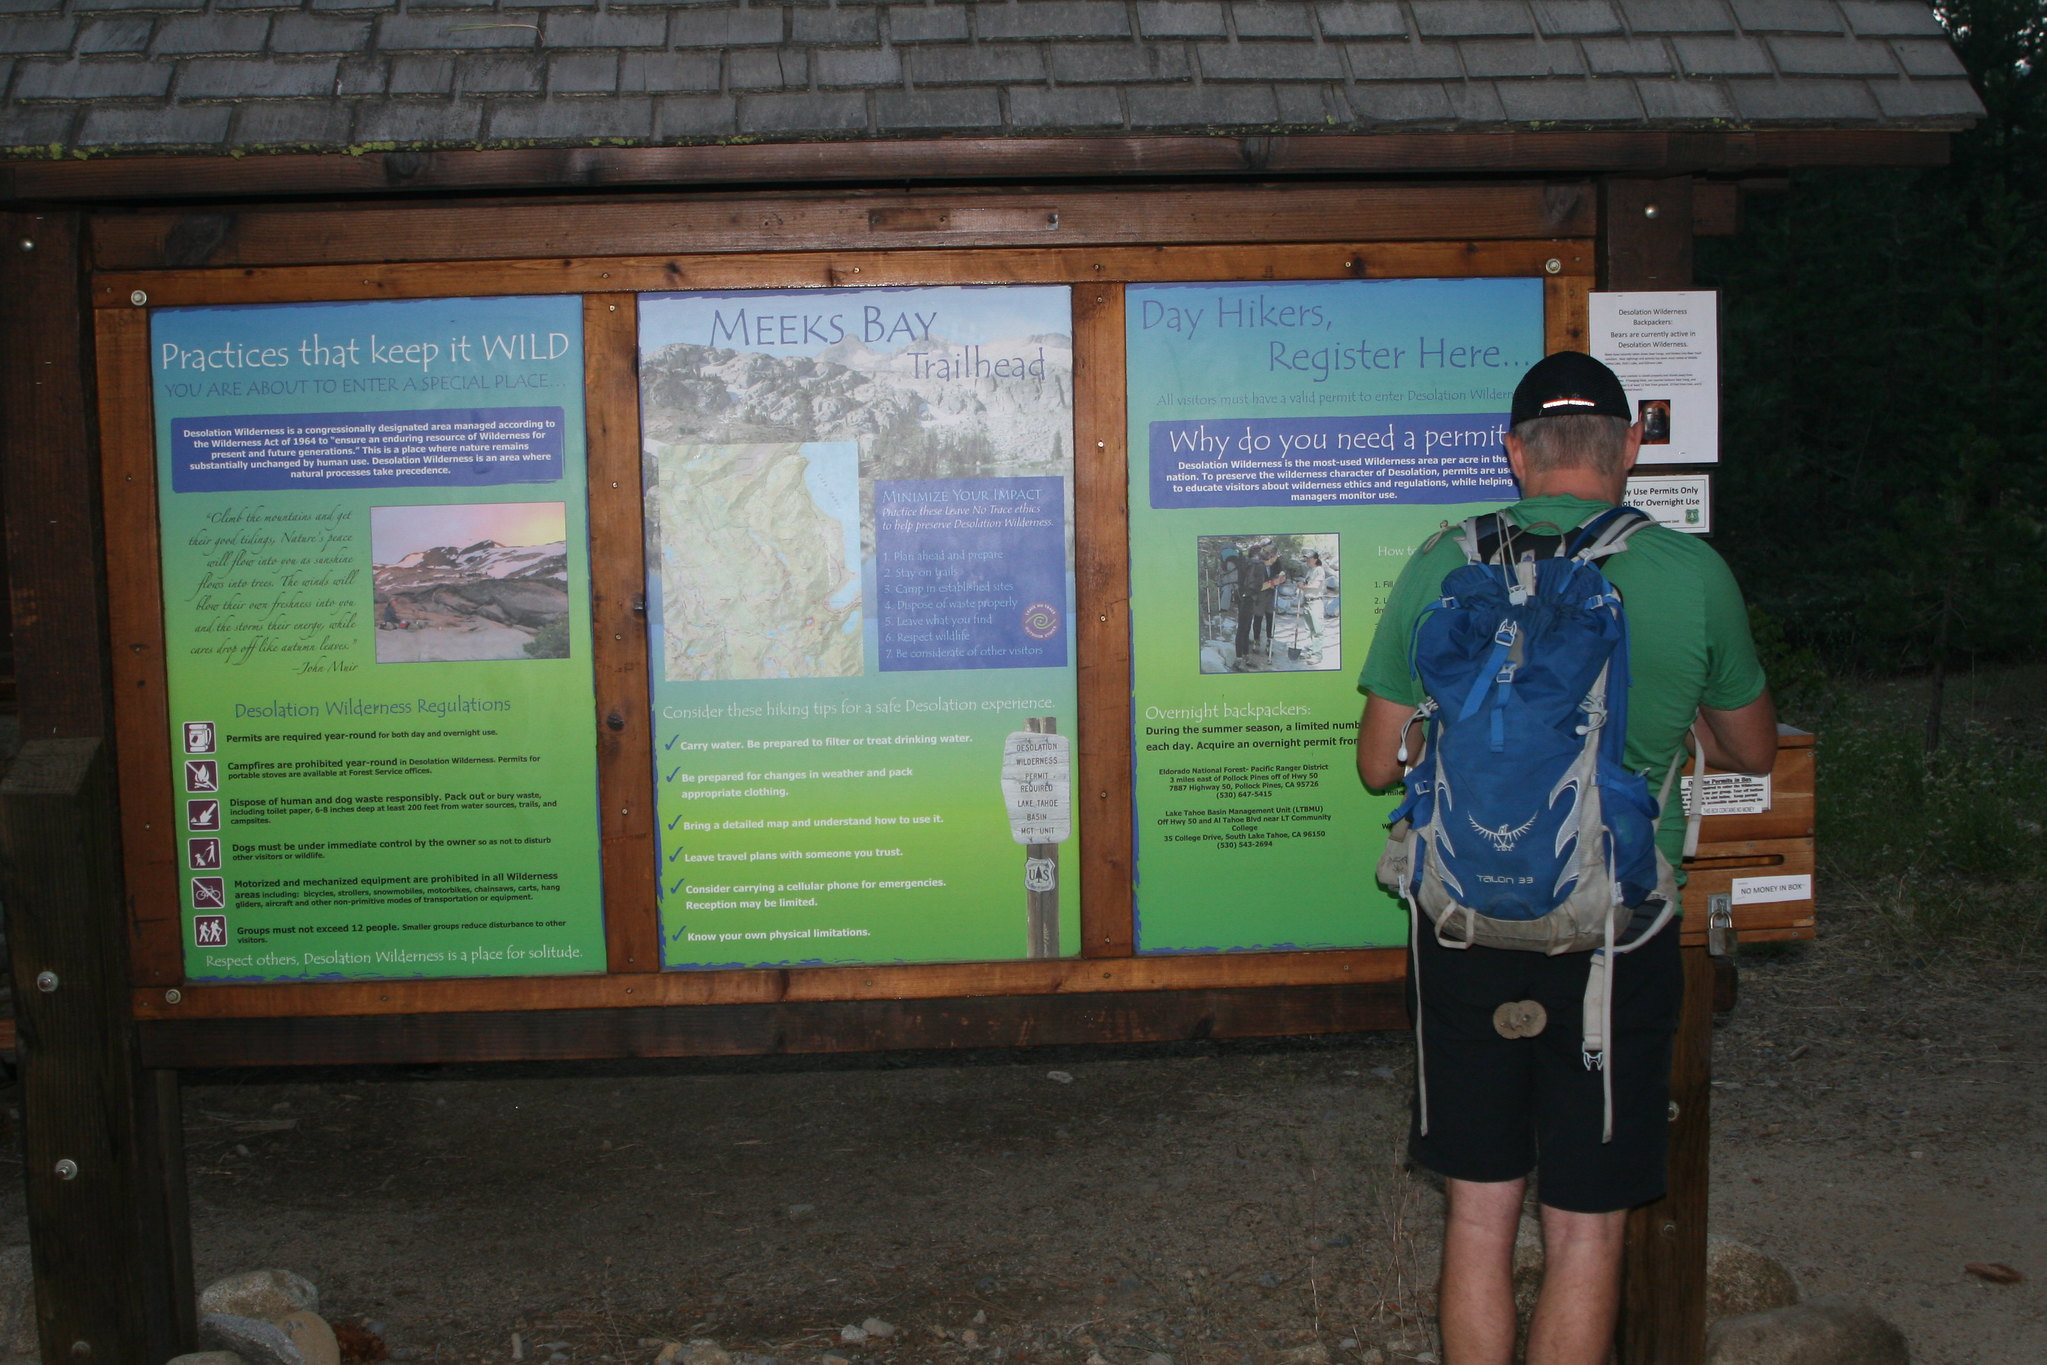 Bart filling out a day permit at the Meeks Bay Trailhead